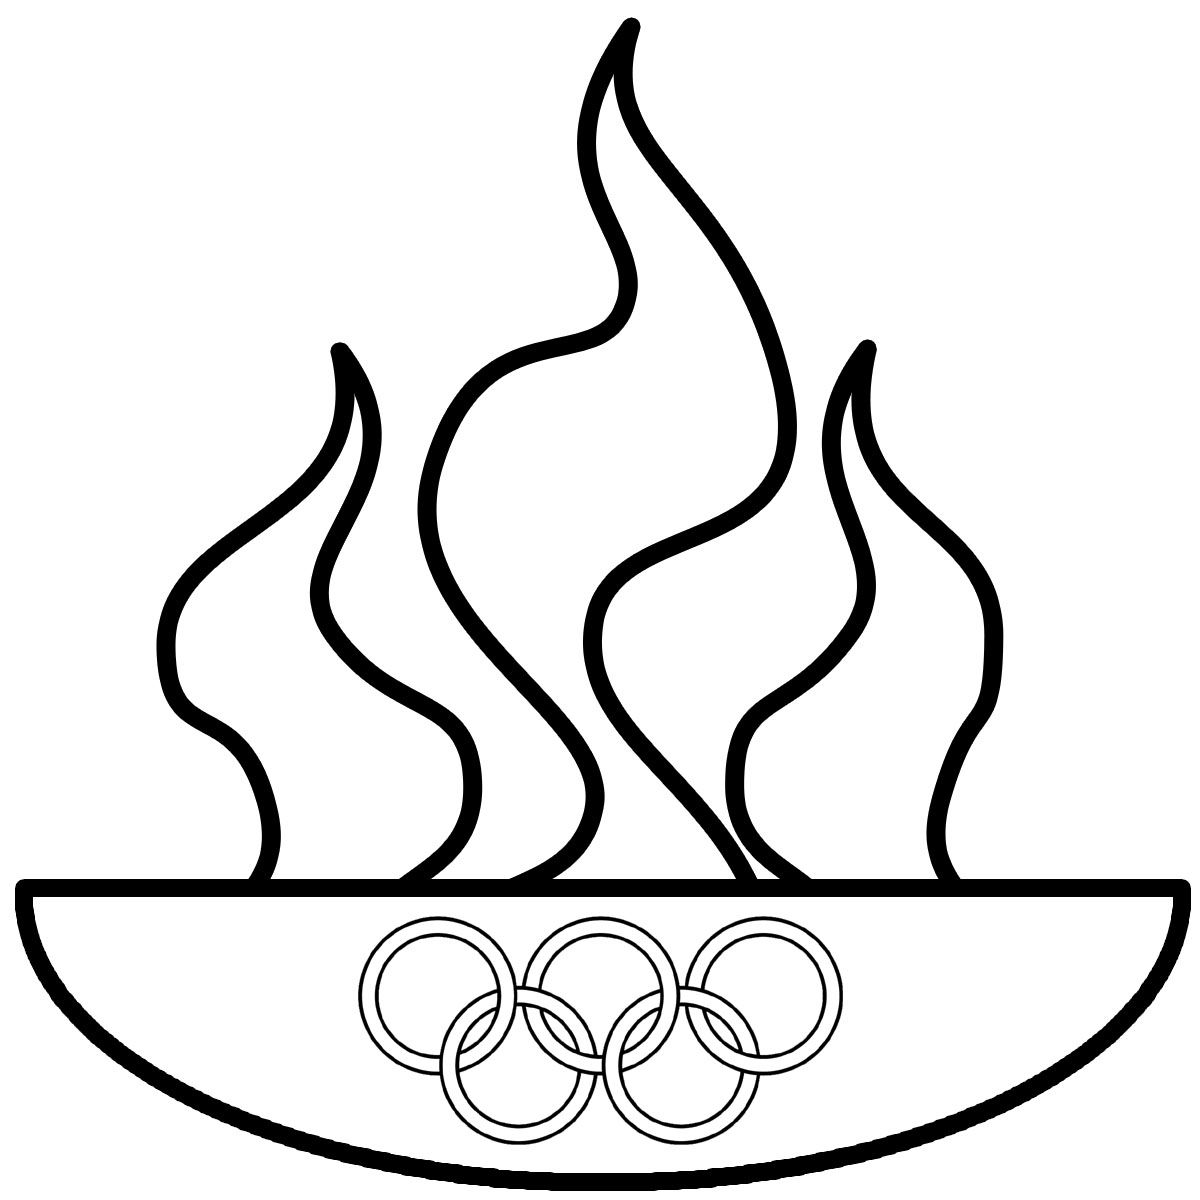 Memorating the theft Of Fire From the Greek God Zeus by Download Of Olympic Games Gymnastic Paris 2024 Olympic & Sport Adult to Print